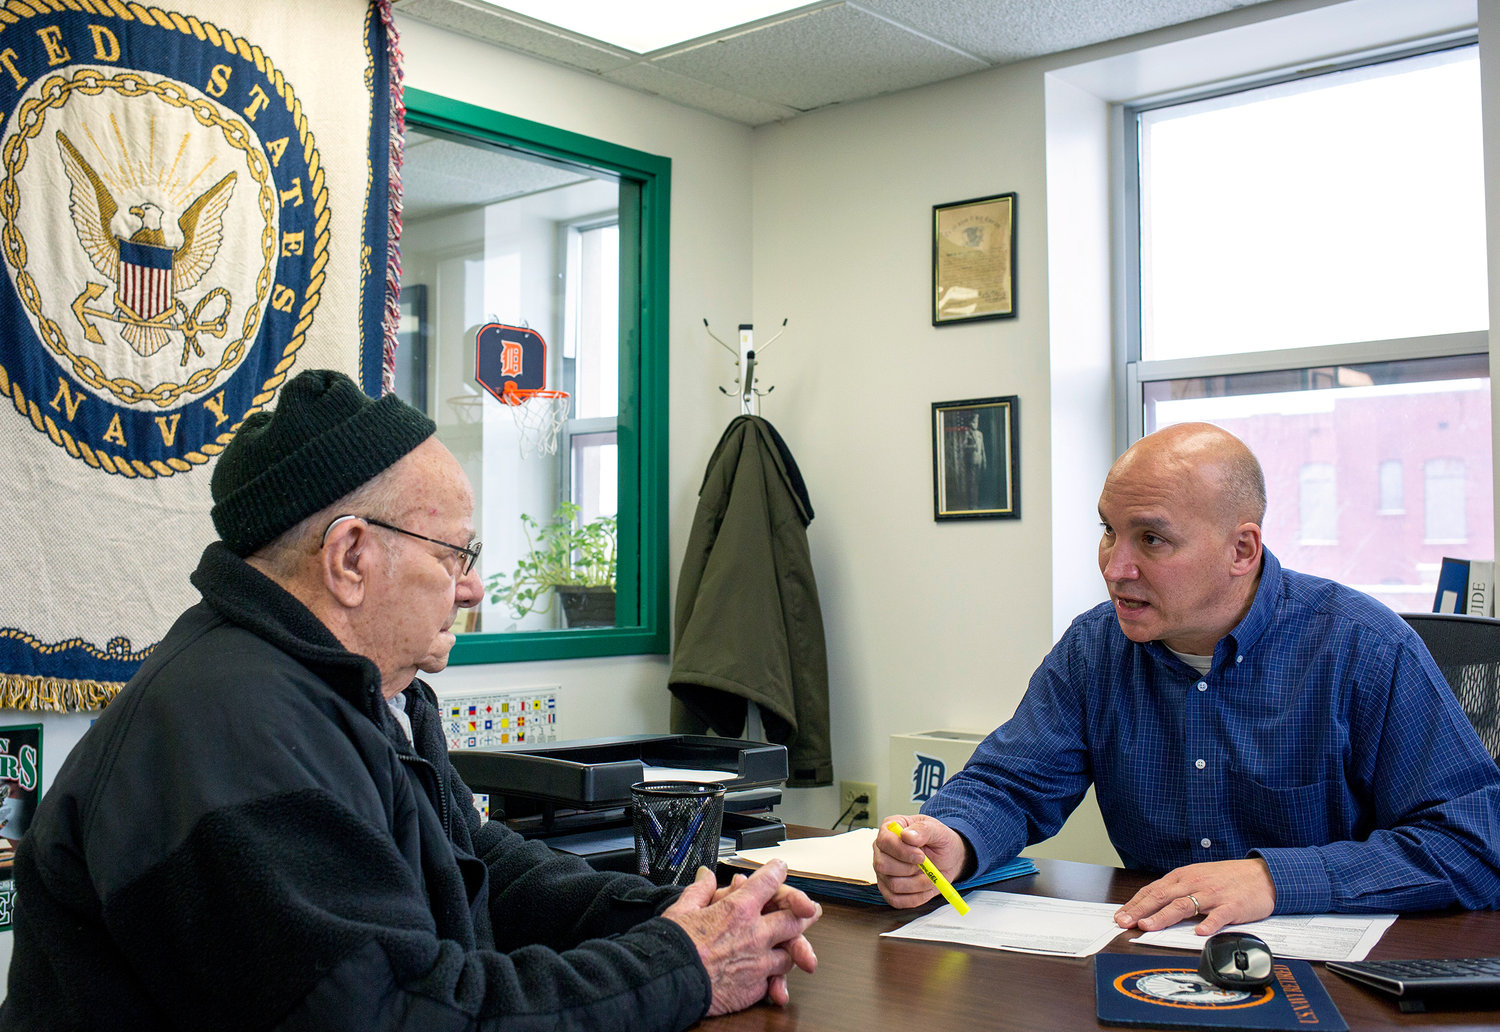 Grant County Veterans Service Officer Bob Kelley, right, works with World War II Army veteran Frederick Kern at the Grant County Government Building in Marion, Ind., on Monday. Aaron P. Bernstein for NPR